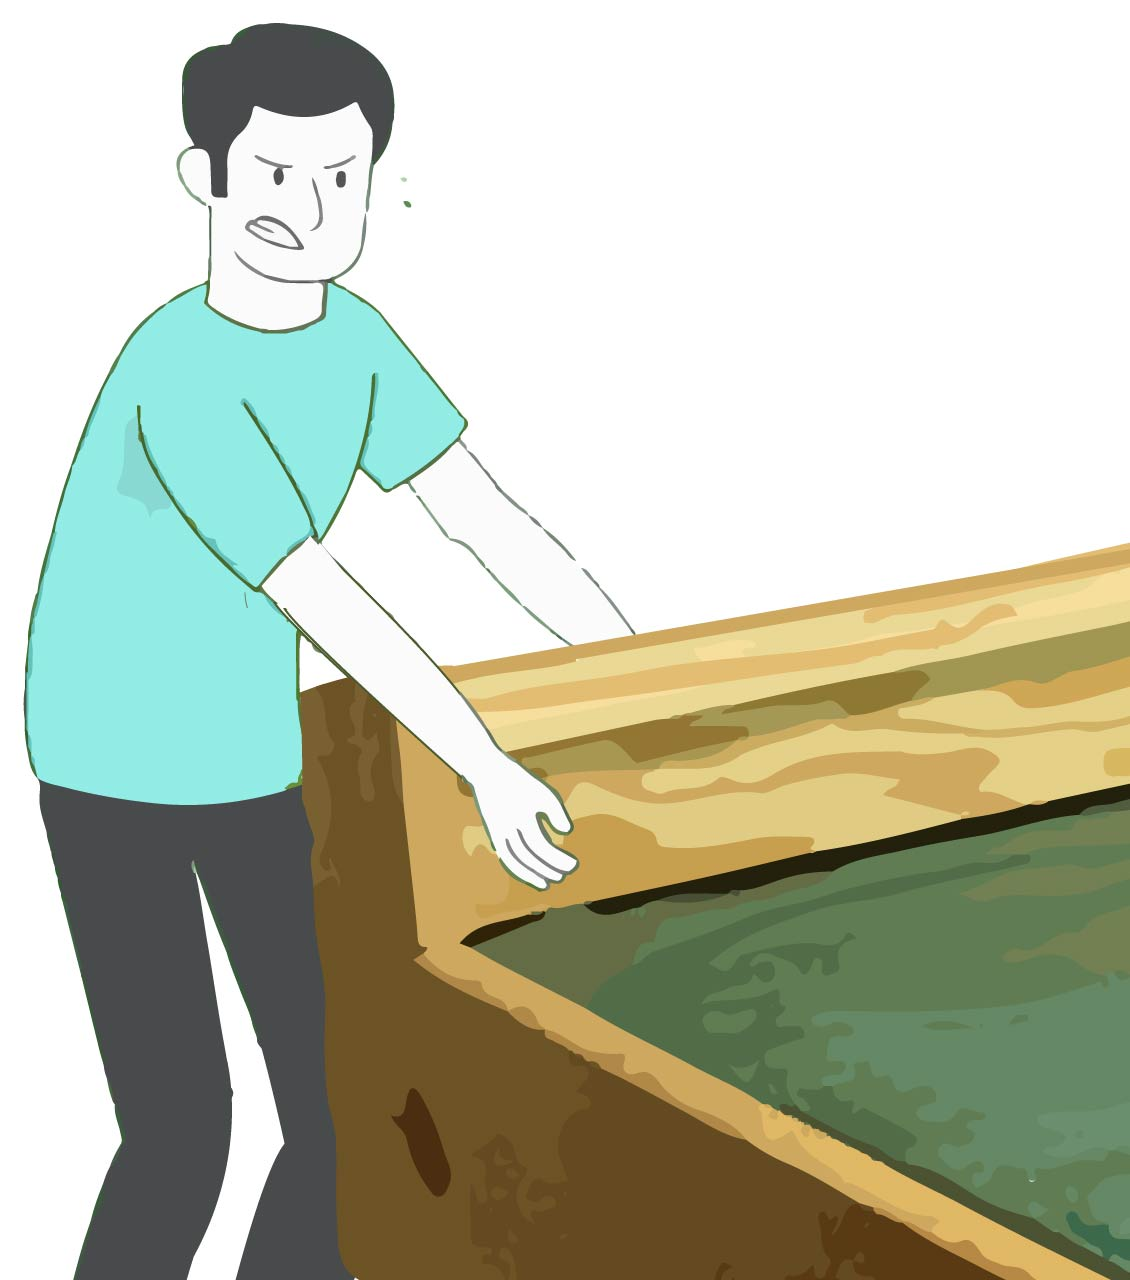 Waterbed disposal and removal services